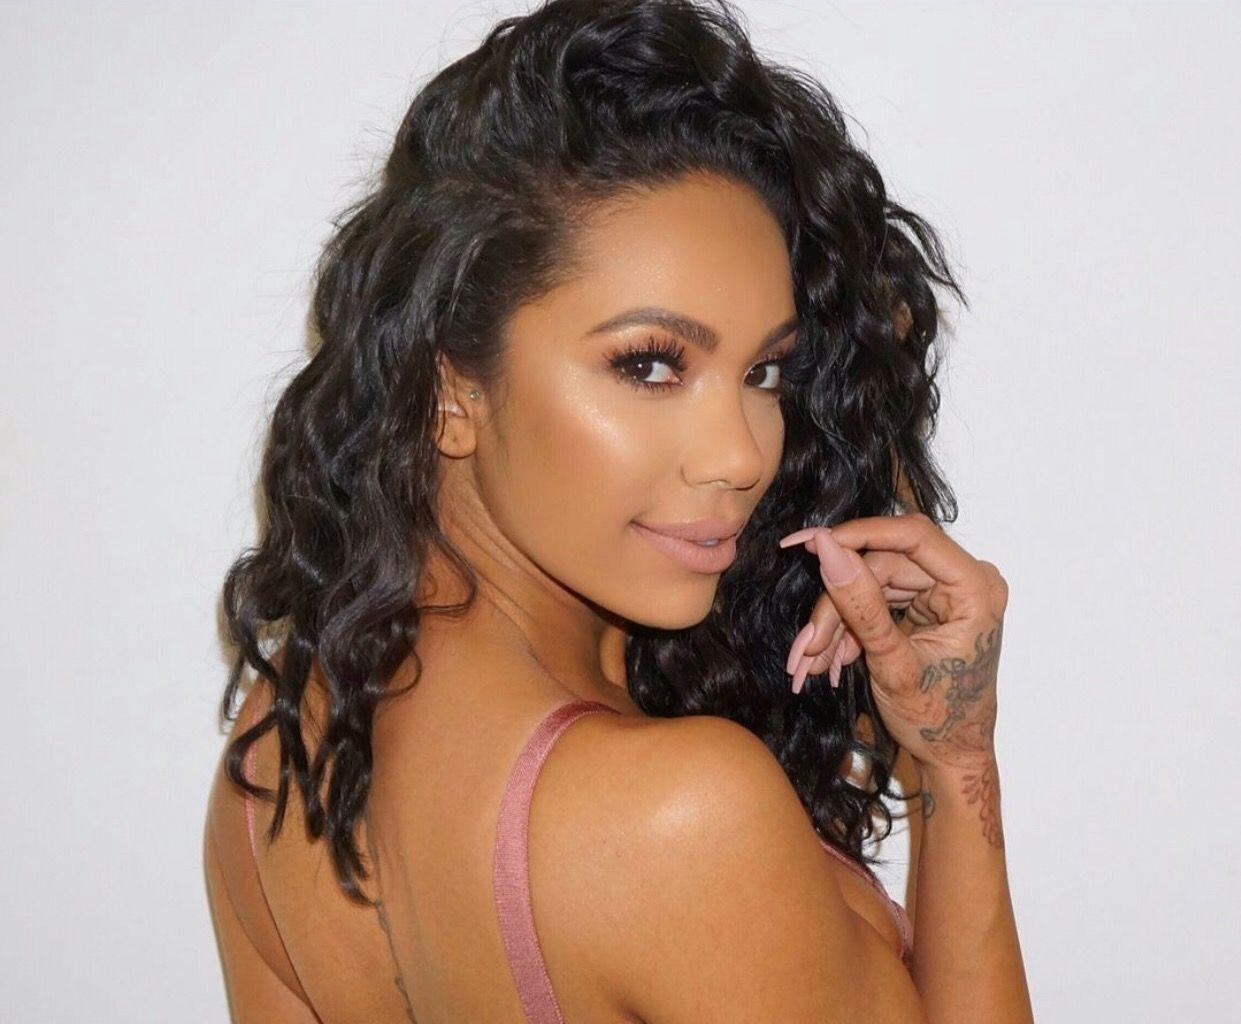 Erica Mena Celebrates Eight Months Of Being A Wife With This Jaw-Dropping Photo